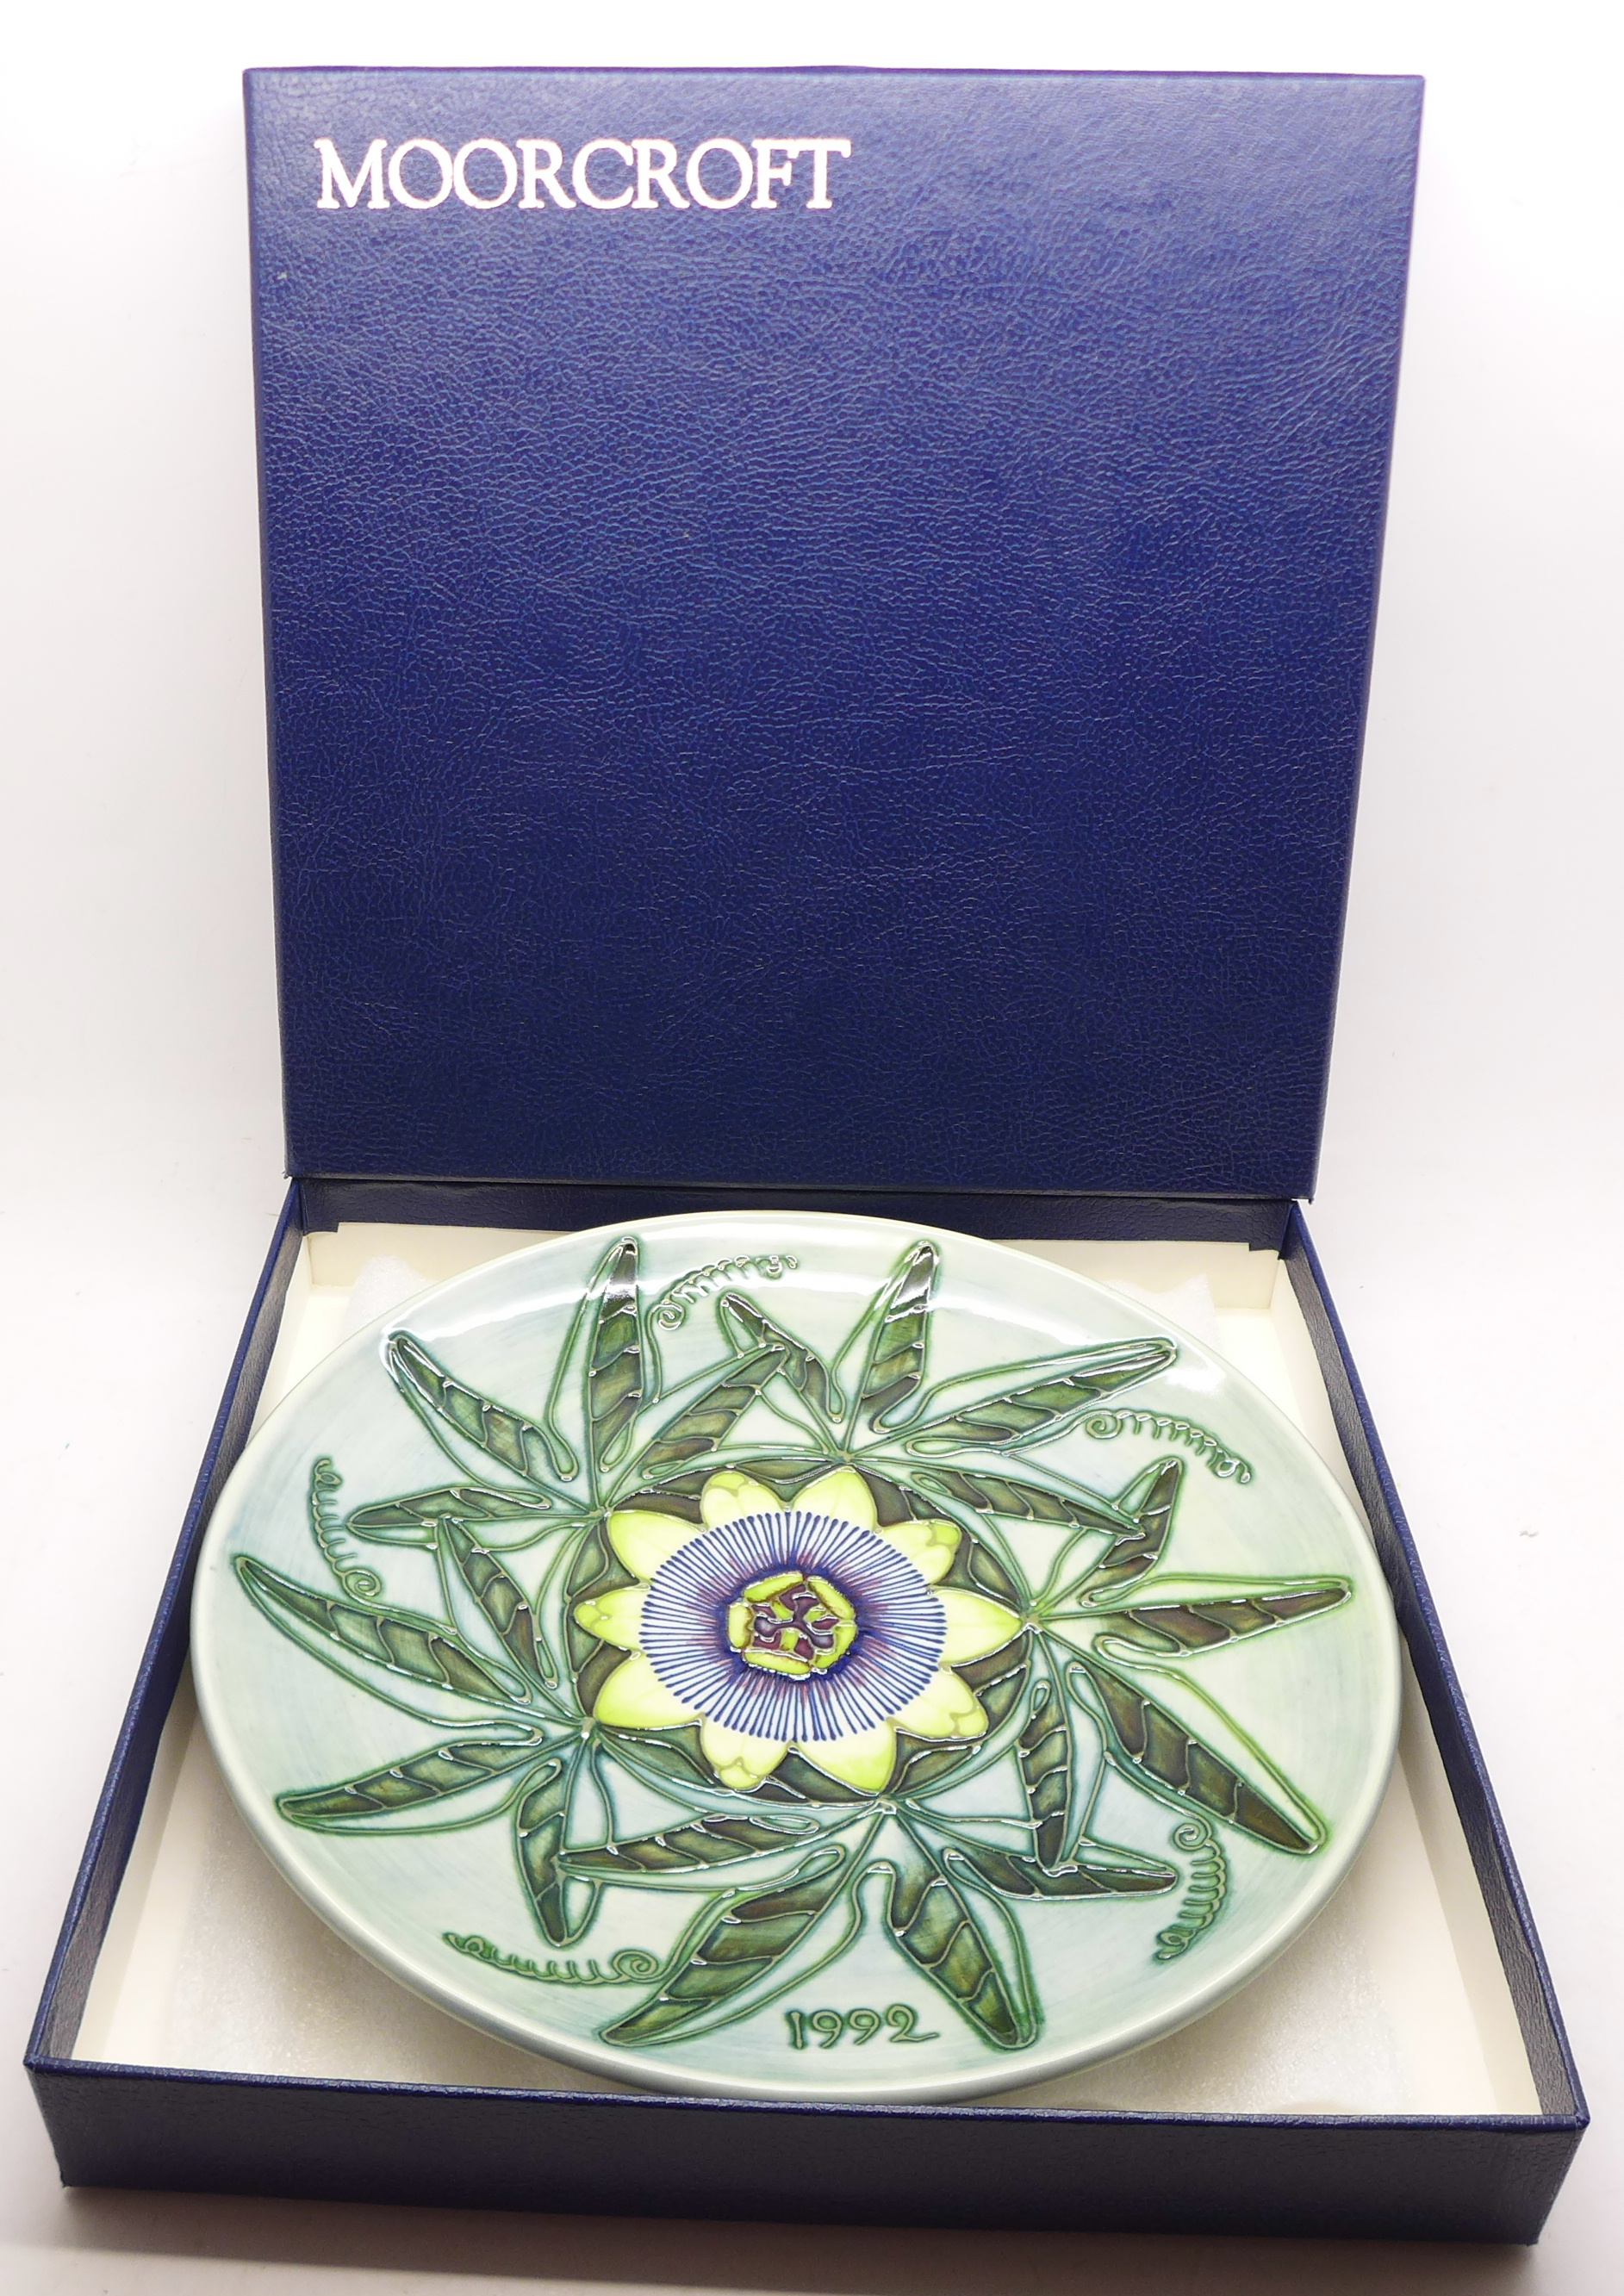 A Moorcroft Limited Edition Year Plate 1992, 422/500, boxed, 217mm - Image 6 of 6